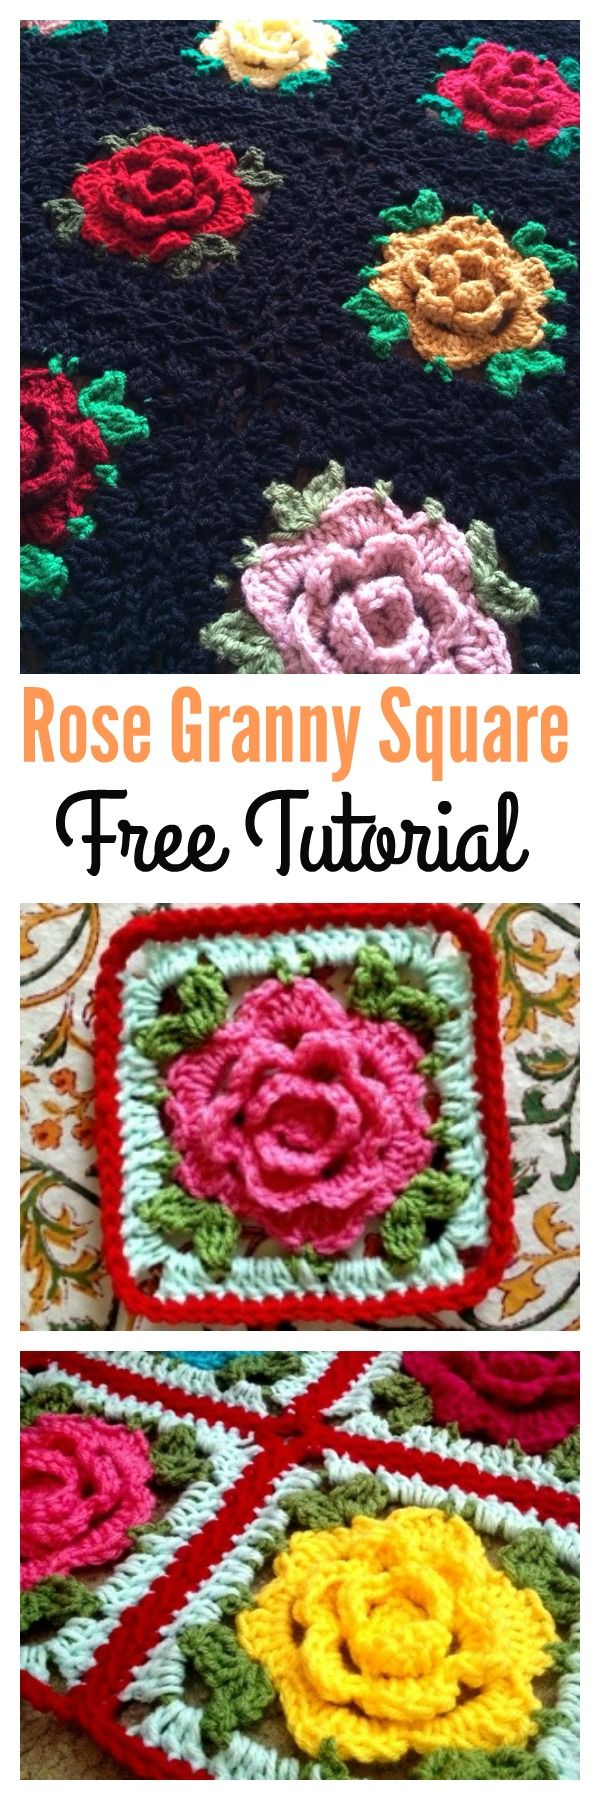 Crochet 3D Rose Granny Square Afghan Free Tutorial